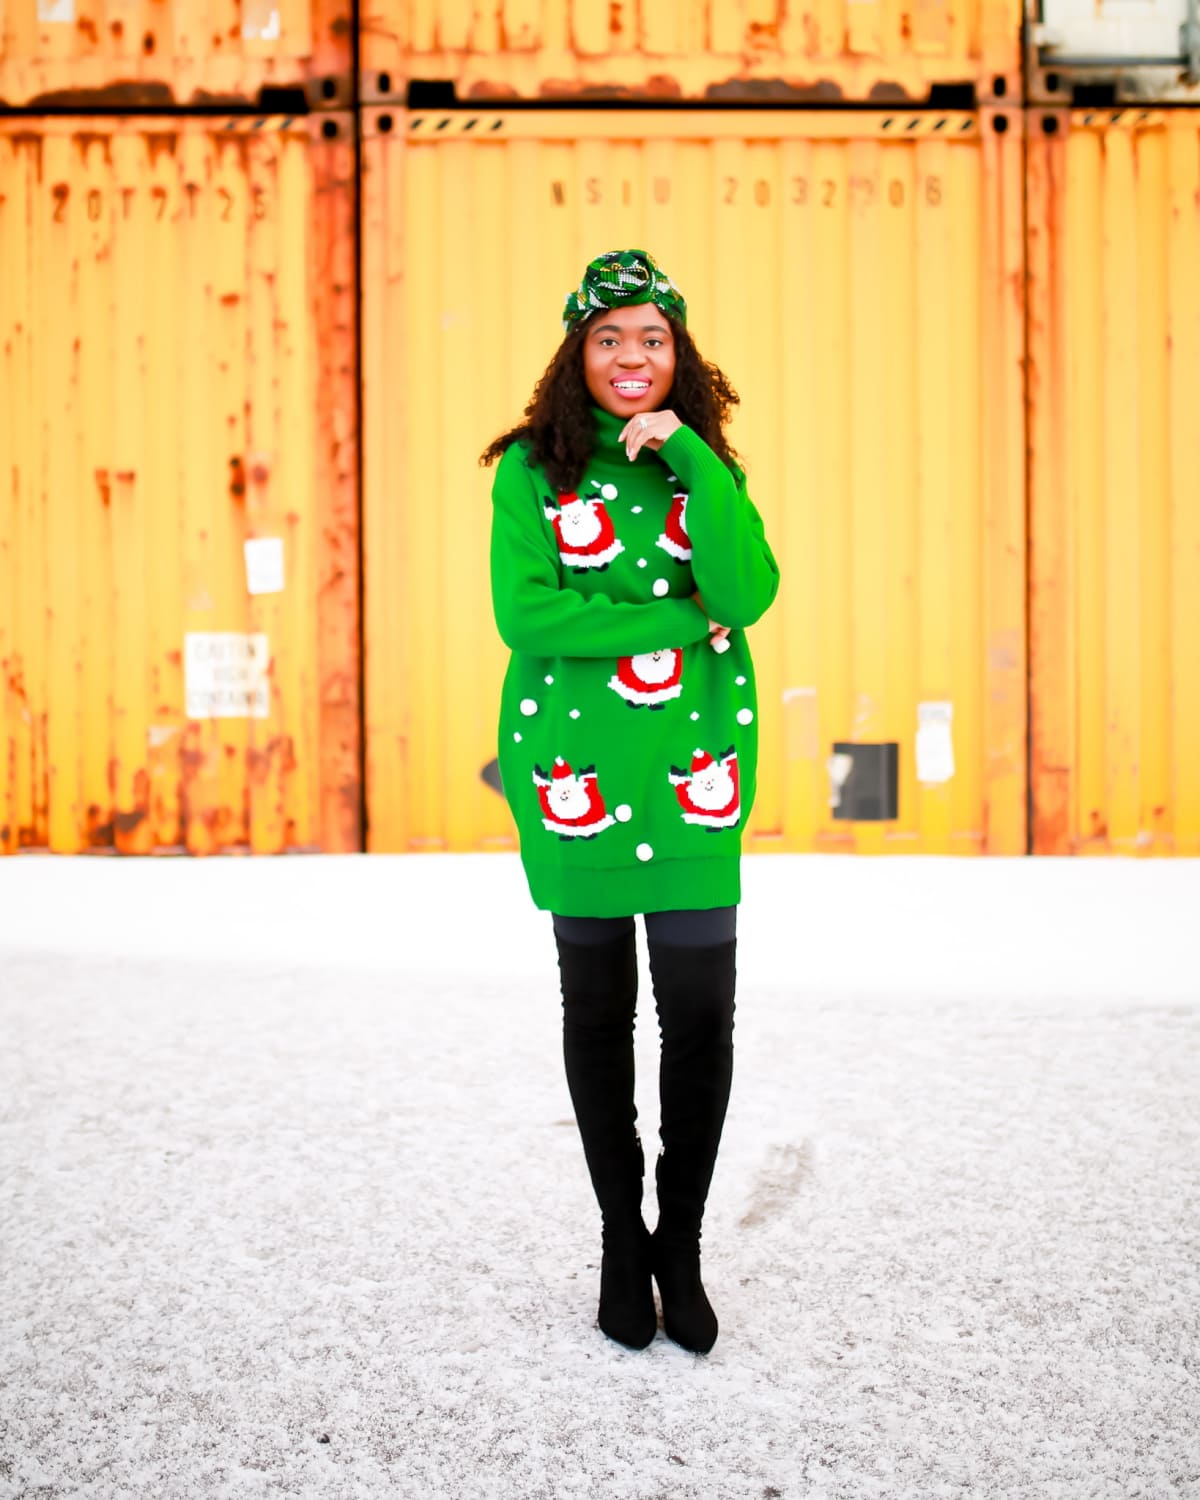 Looking for a stylish and cute Christmas sweater dress to rock this year? You're in luck! This affordable Xmas sweater is up for grabs and ships free. How to style your sweater and where to get this sweater dress right now. #uglychristmassweaterparty #sweaterdress